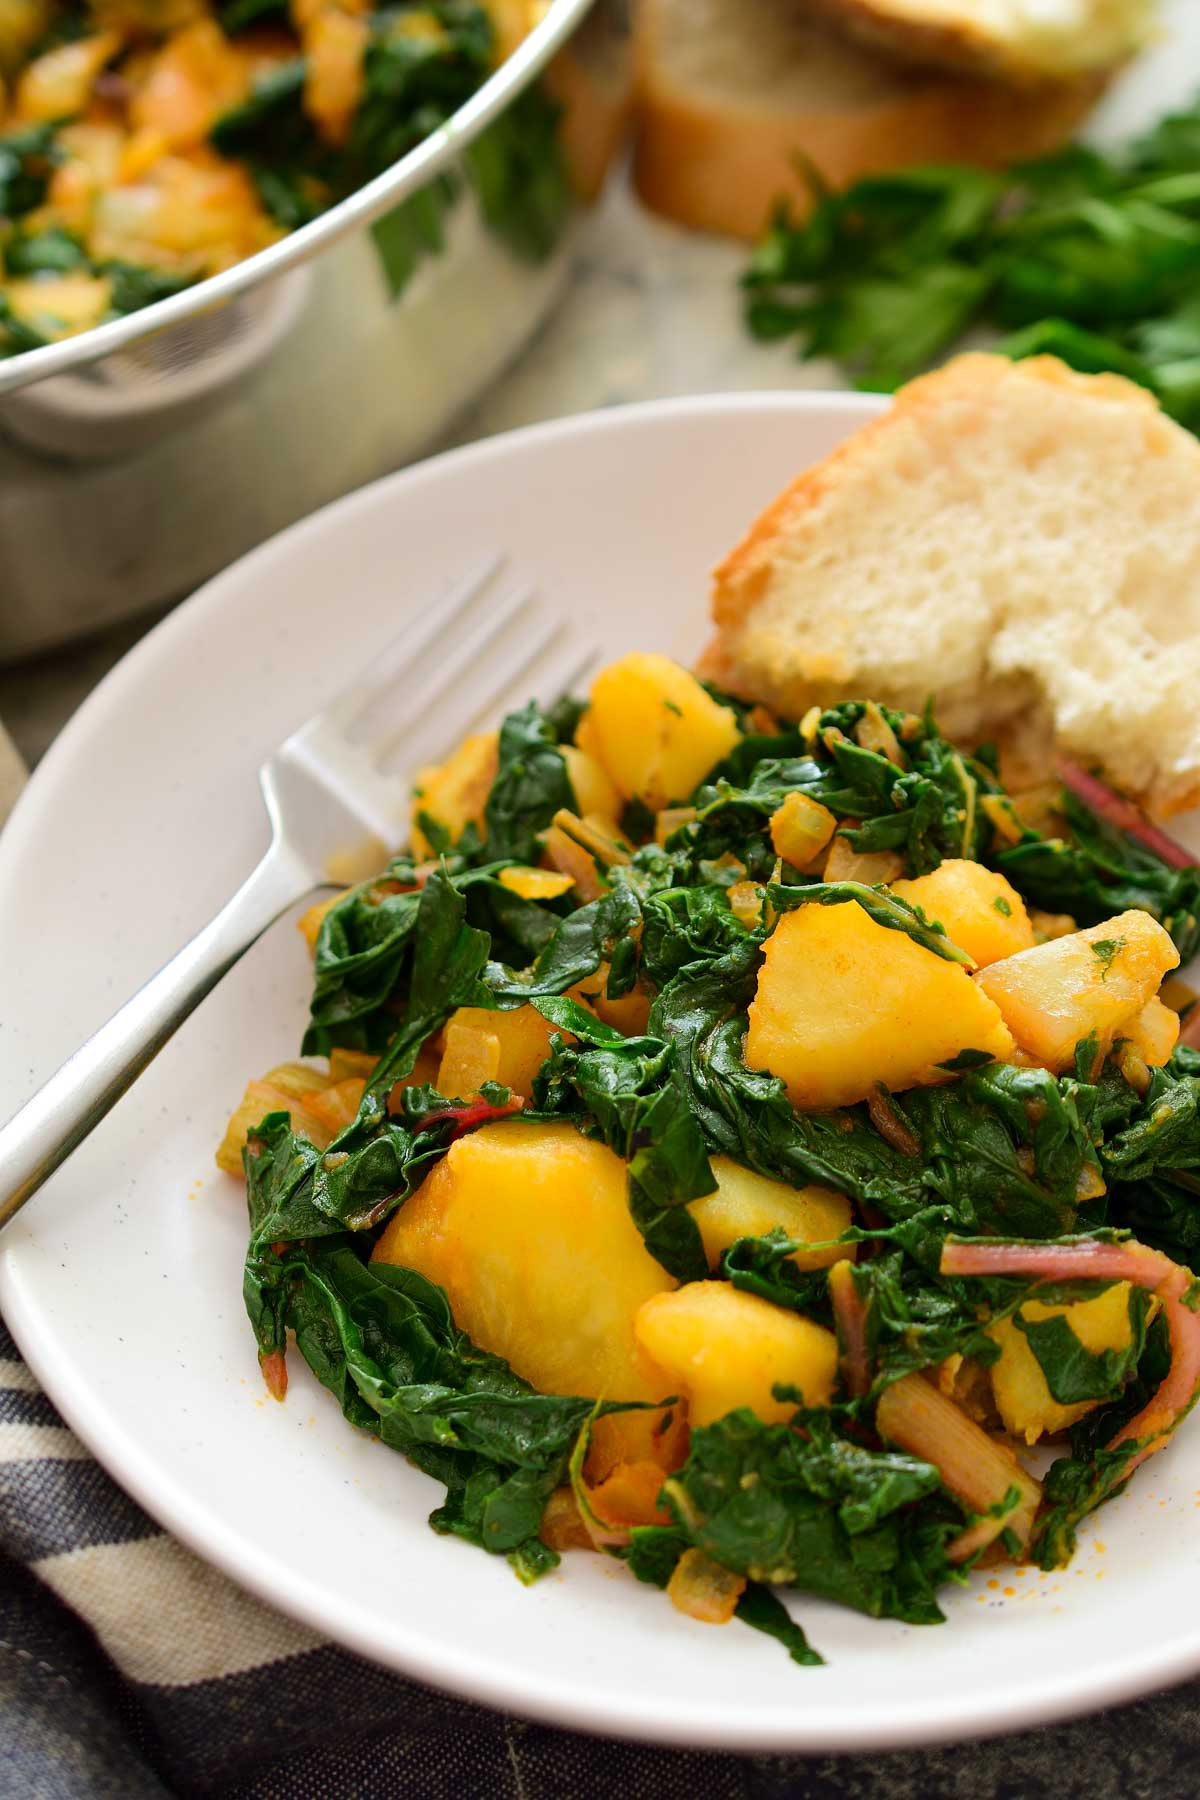 A white bowl with Swiss chard and potatoes, bread on the side.